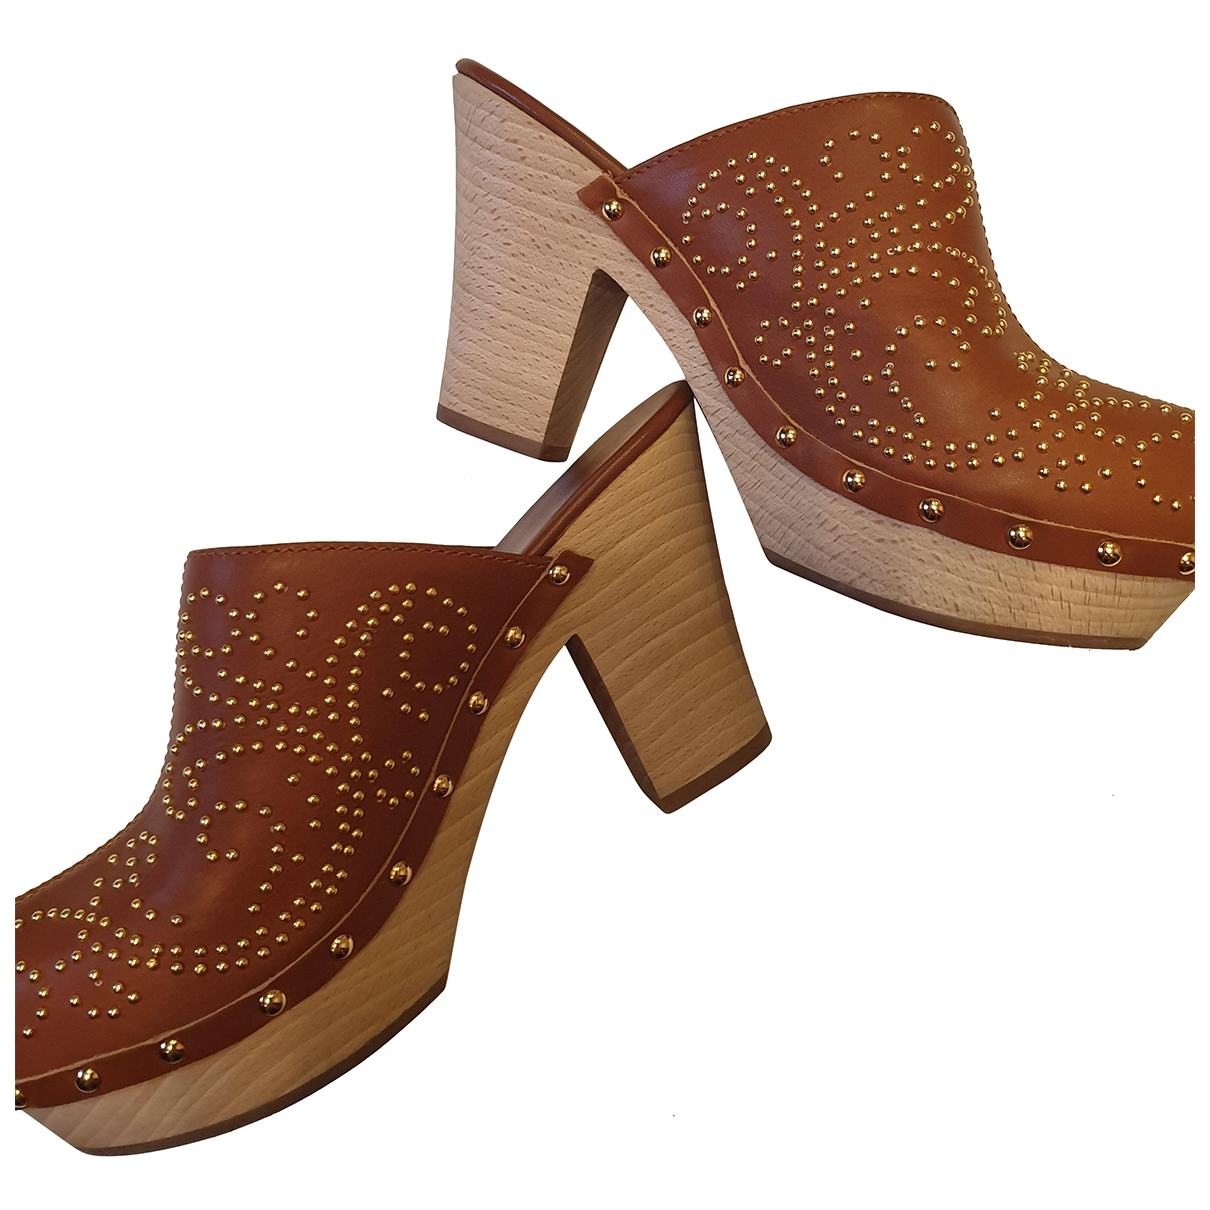 Sergio Rossi \N Brown Leather Mules & Clogs for Women 39 EU